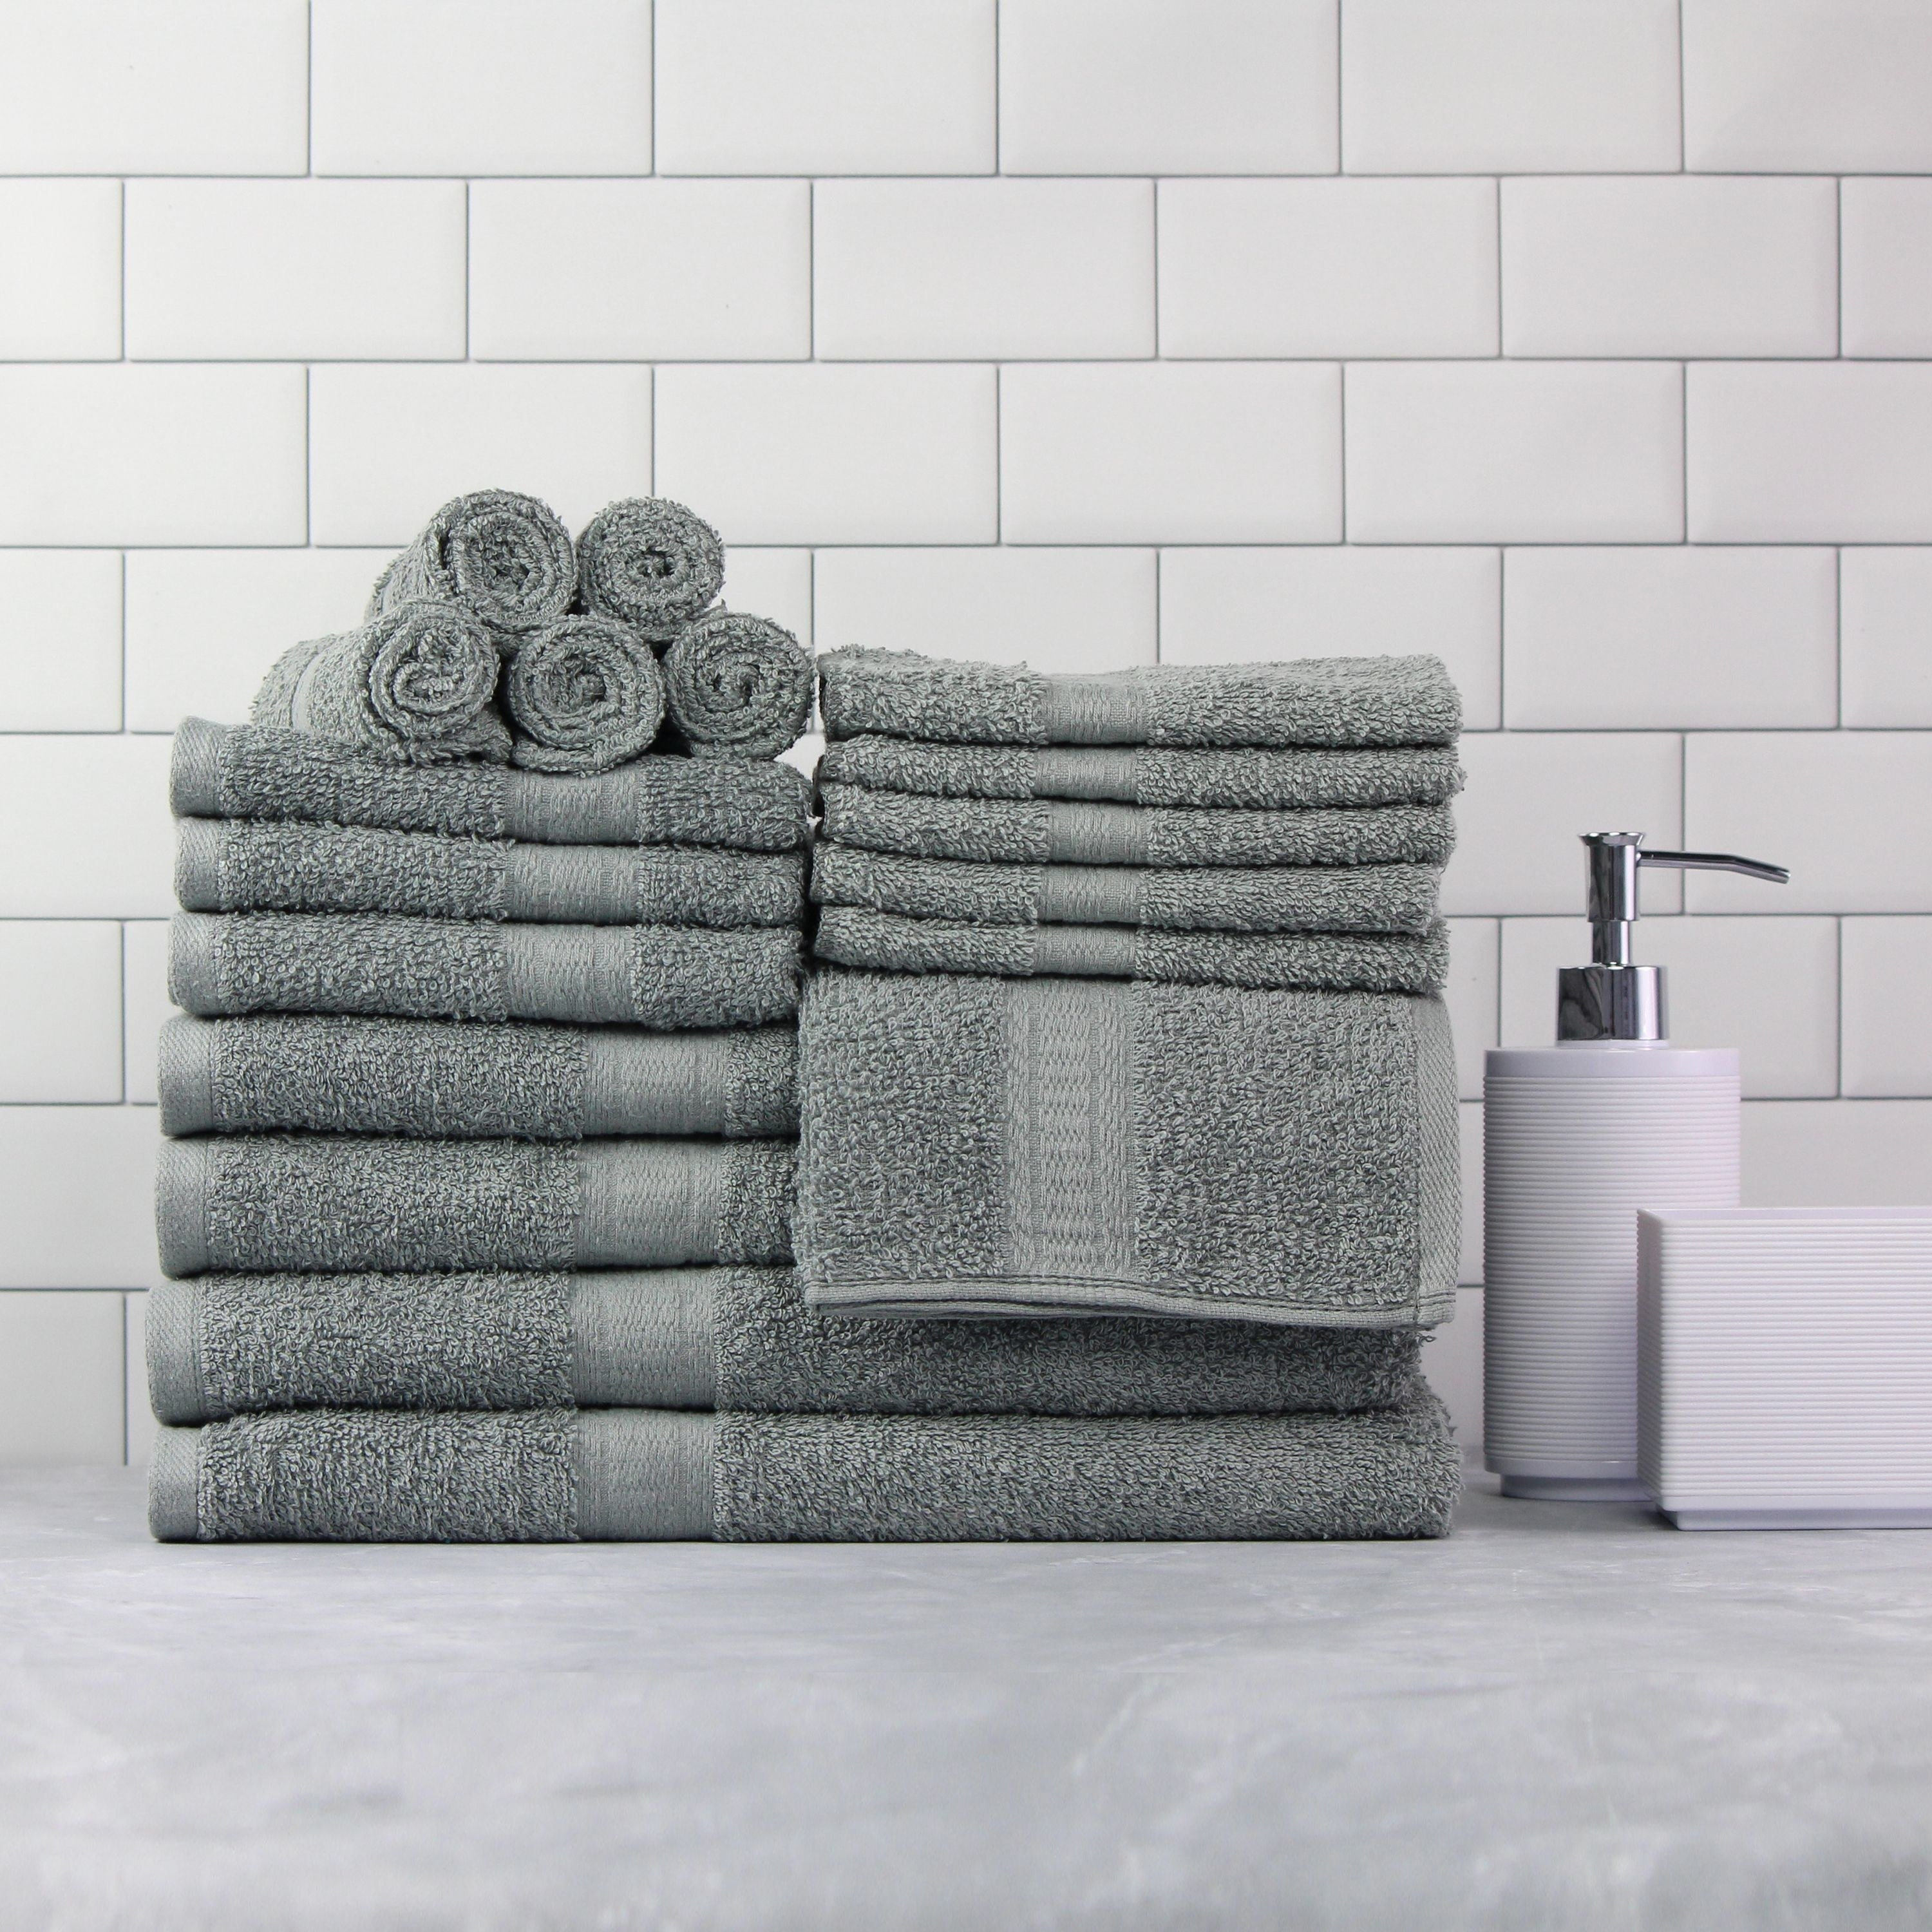 The grey towels on a bathroom counter